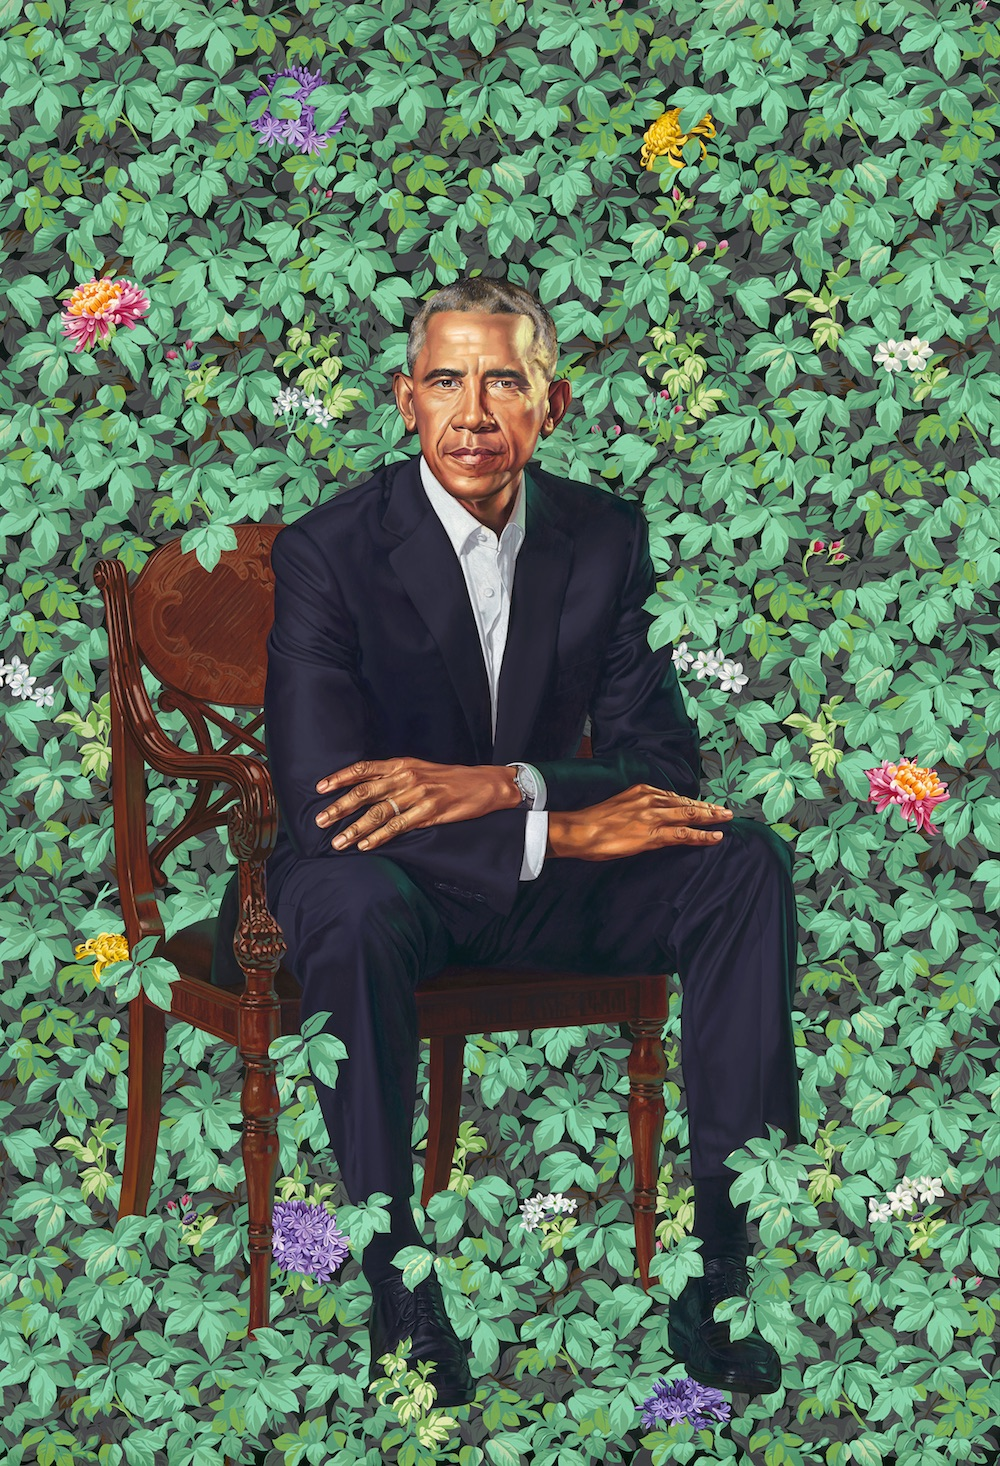 President Barack Obama by Kehinde Wiley© Kehinde Wiley